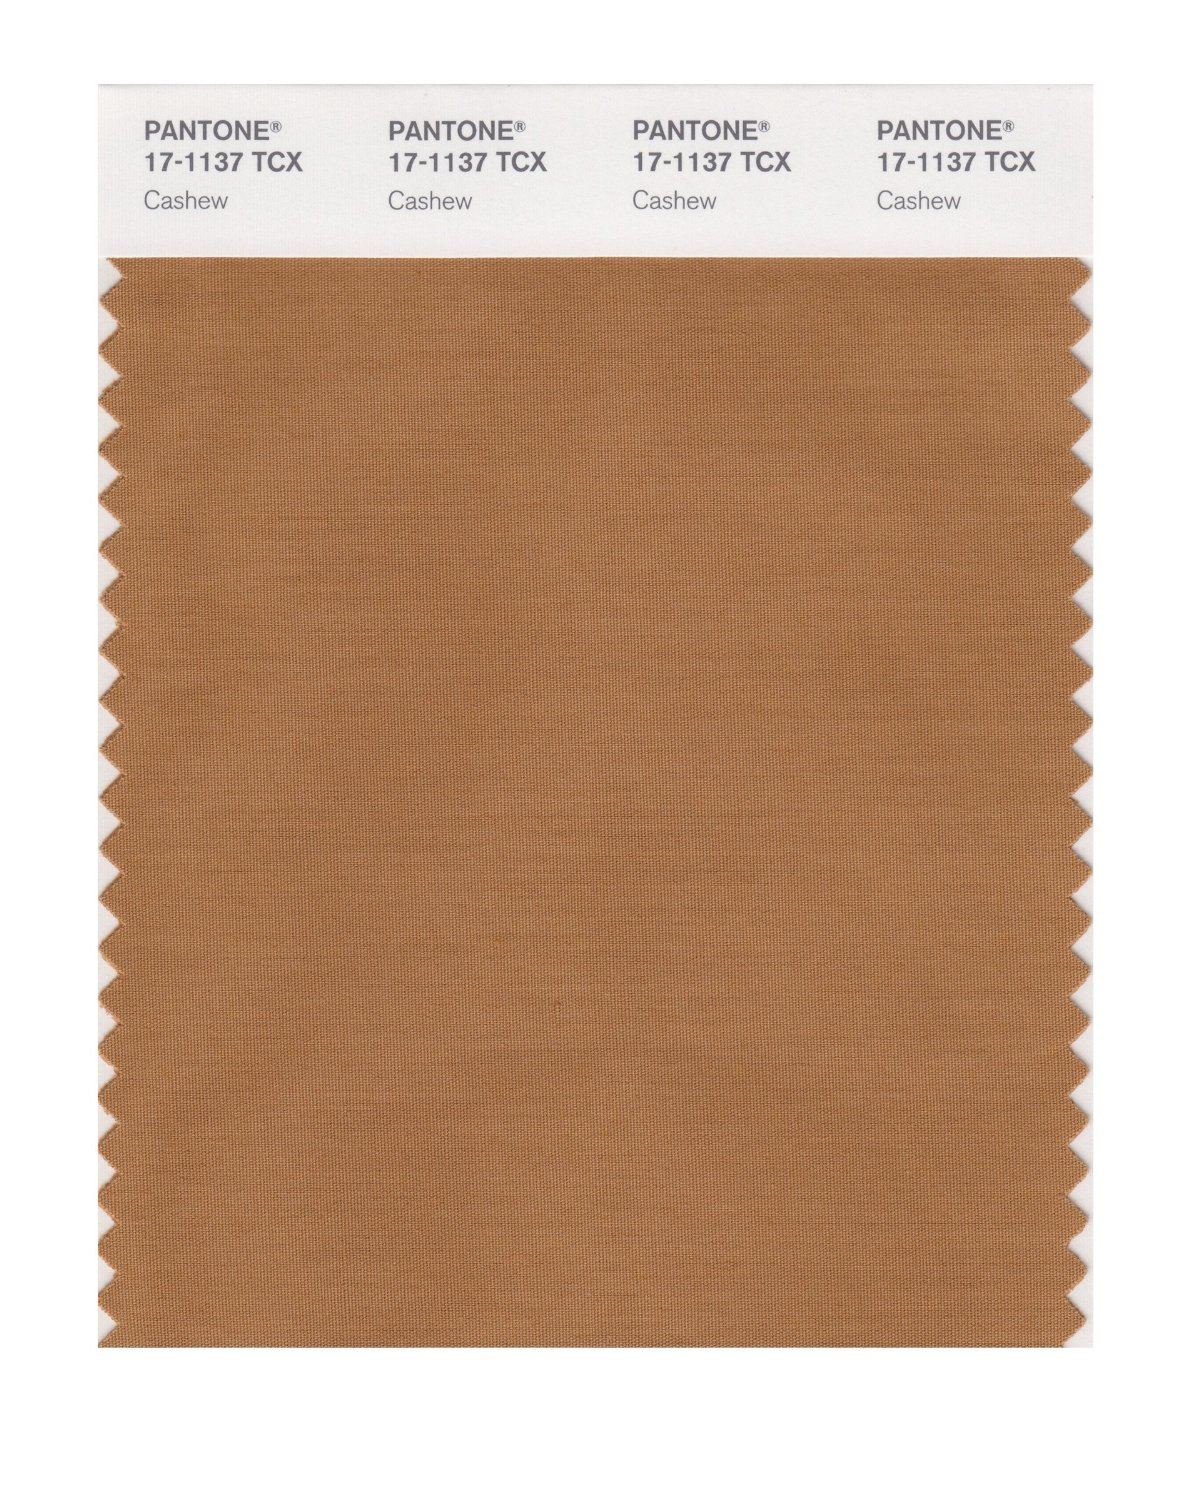 Pantone Smart Swatch 17-1137 Cashew